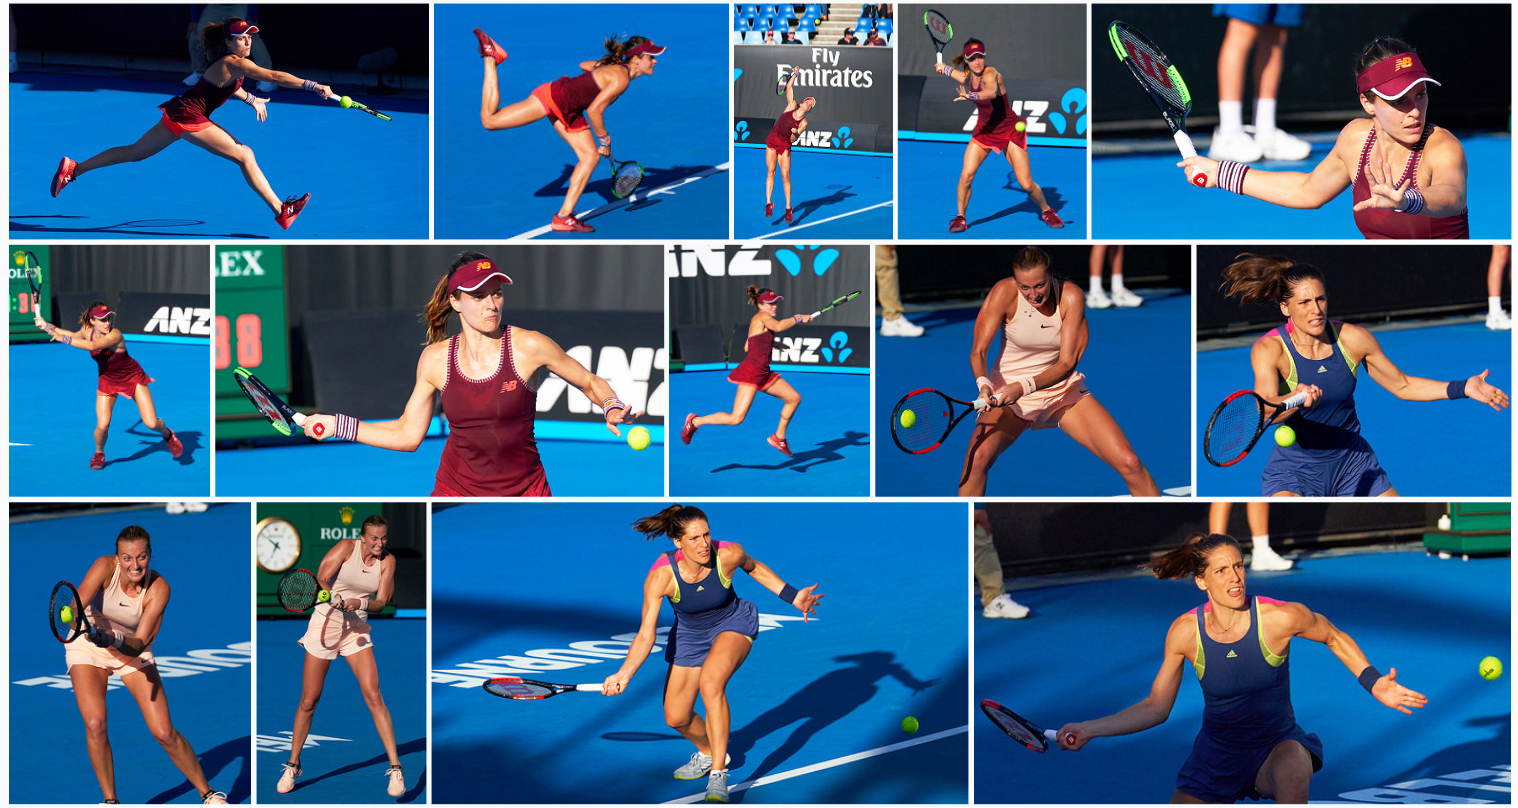 sony a9 sports photography pbp photos by passy